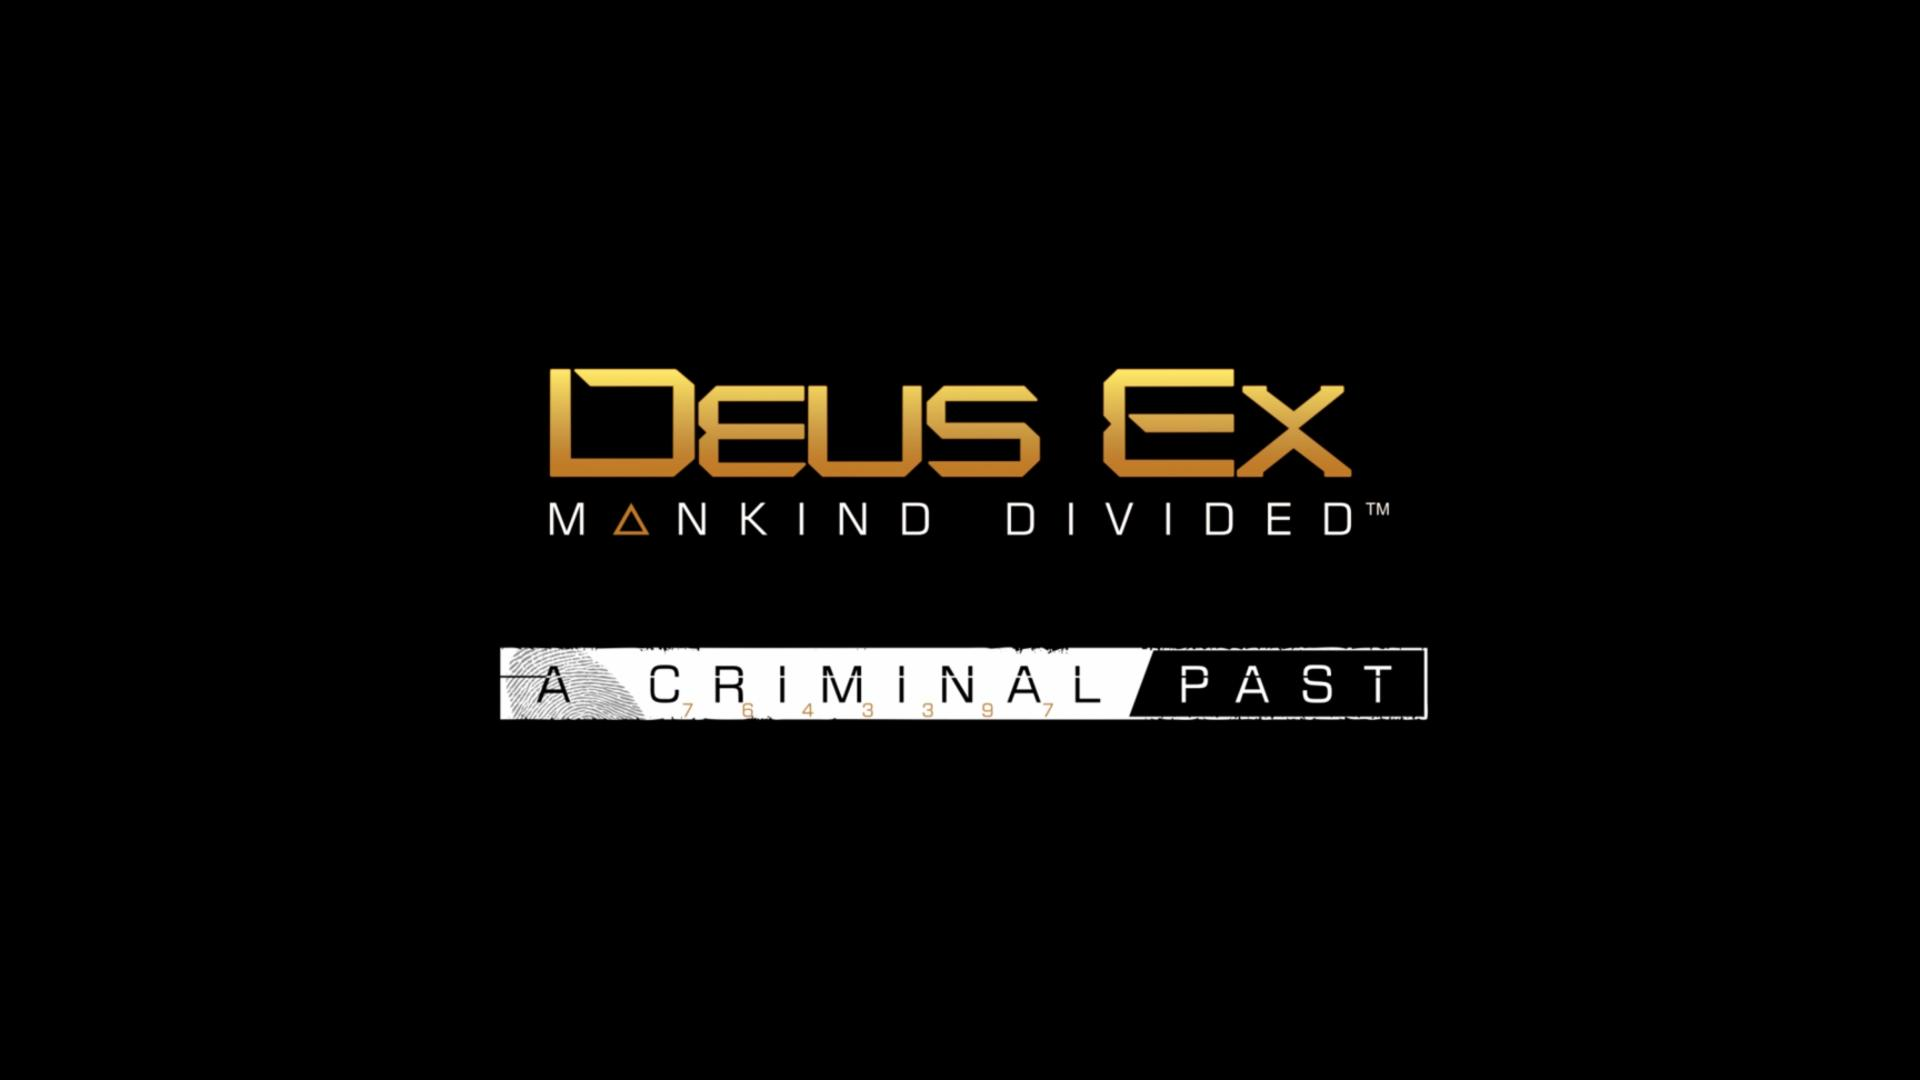 000332.Jpg - Deus Ex: Mankind Divided